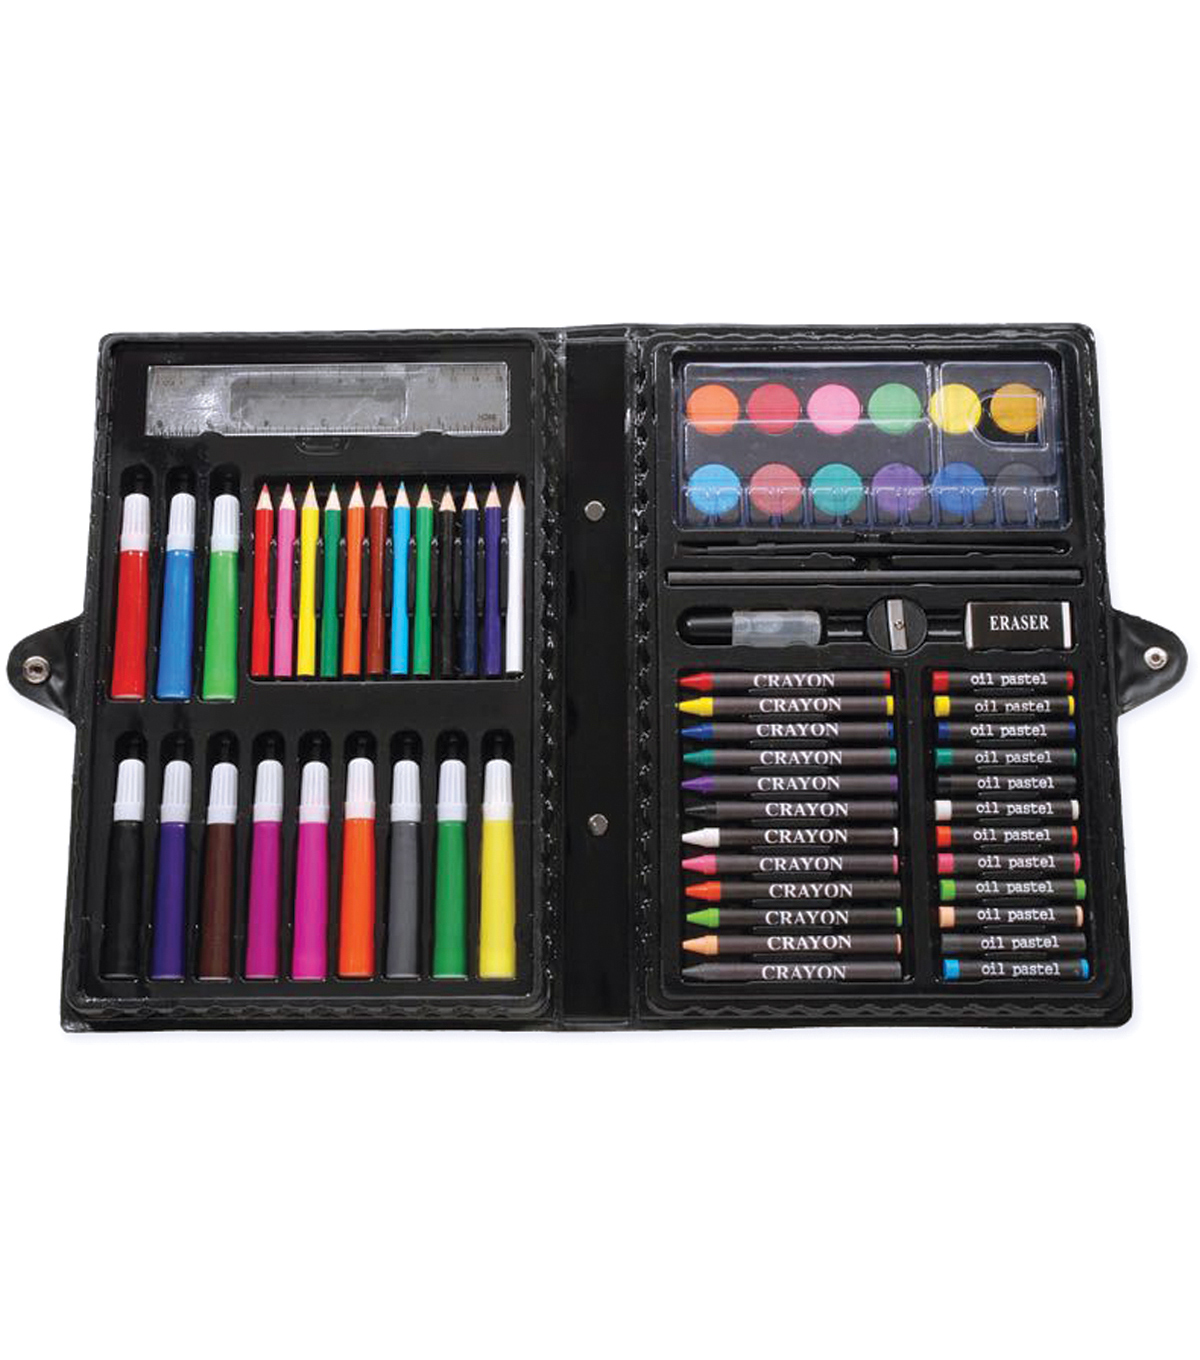 Darice Artyfacts Portable Art Studio Kit-68 Pieces